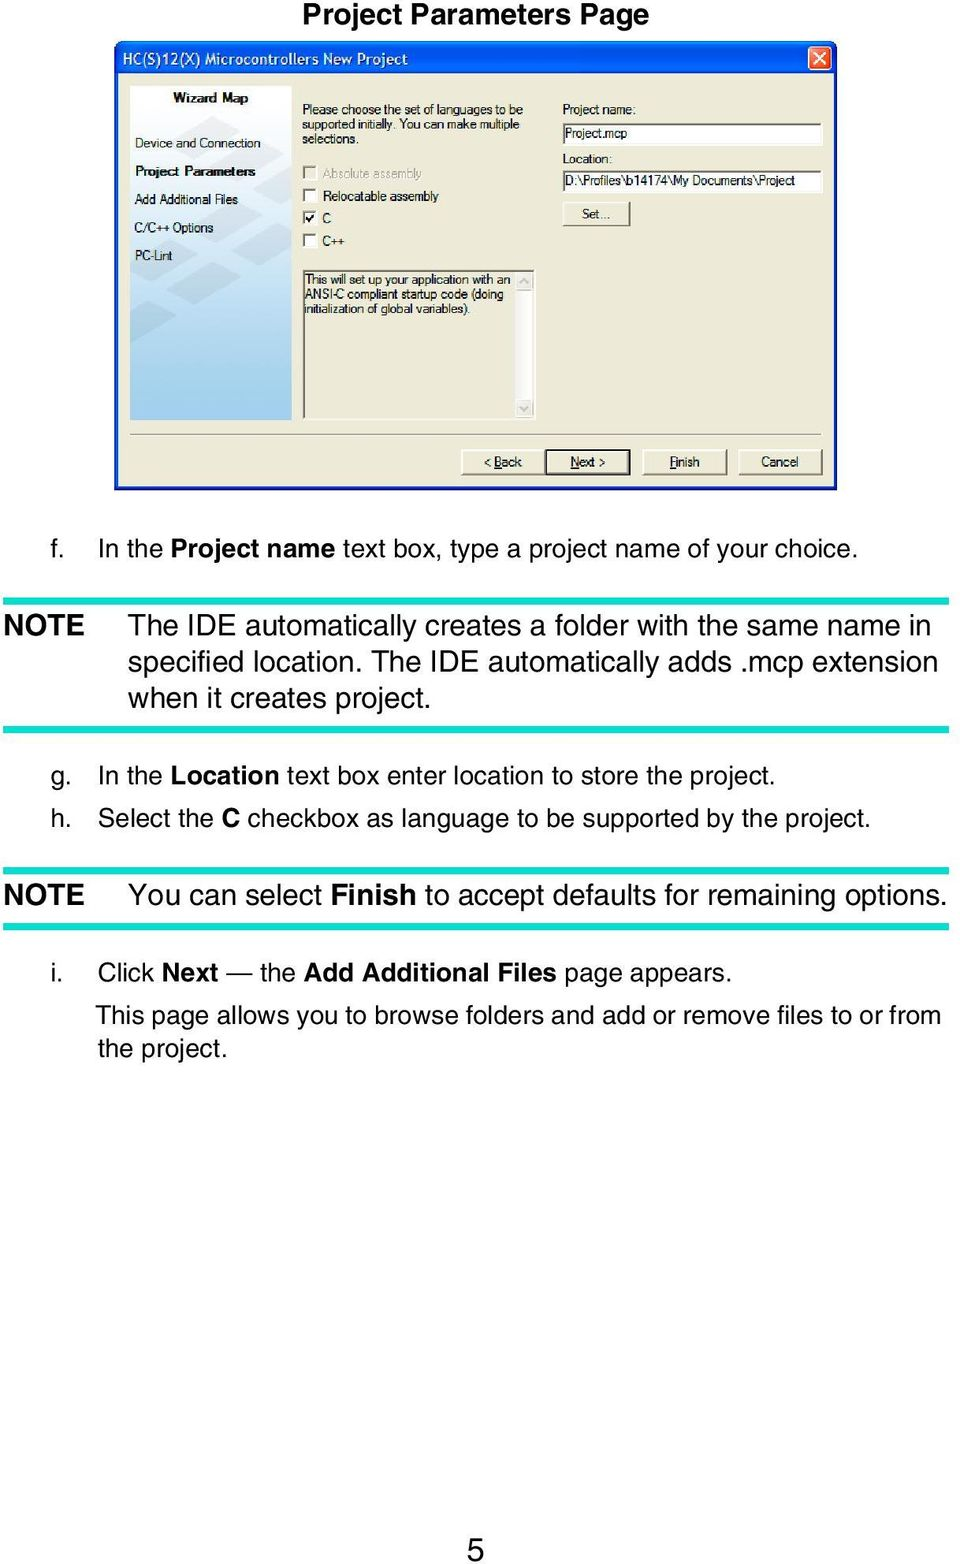 mcp extension when it creates project. g. In the Location text box enter location to store the project. h.